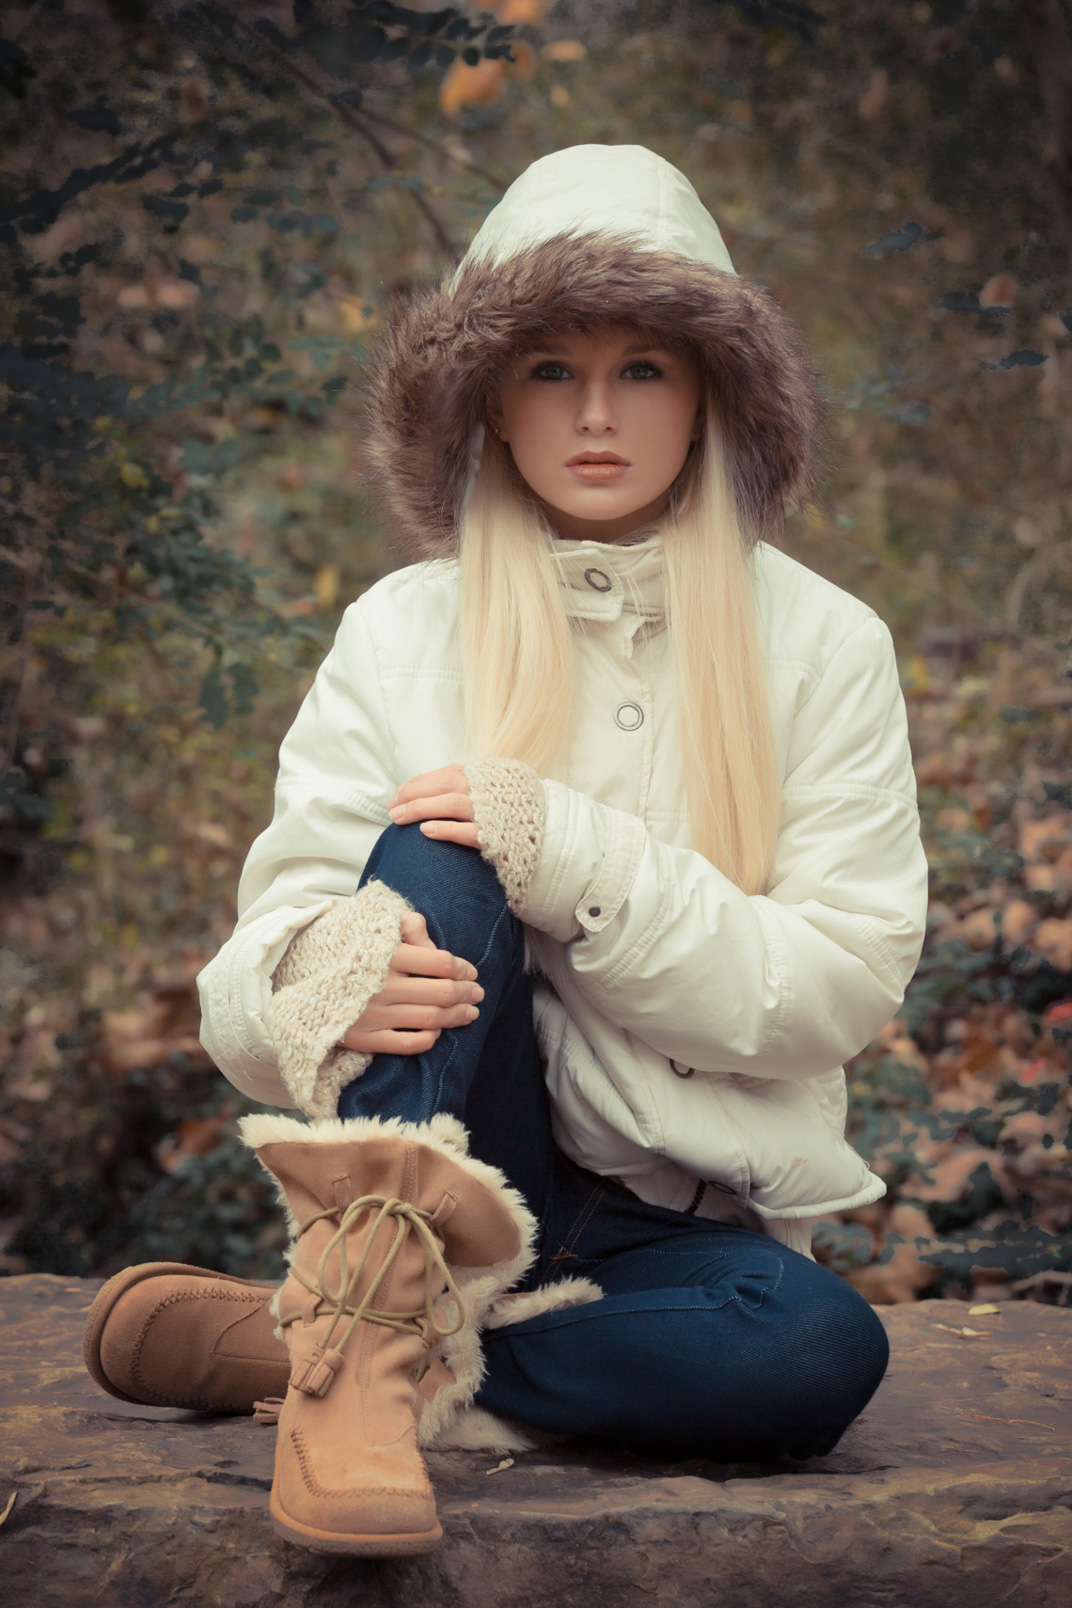 Winter Fashion ©2014 creative4mat - 1